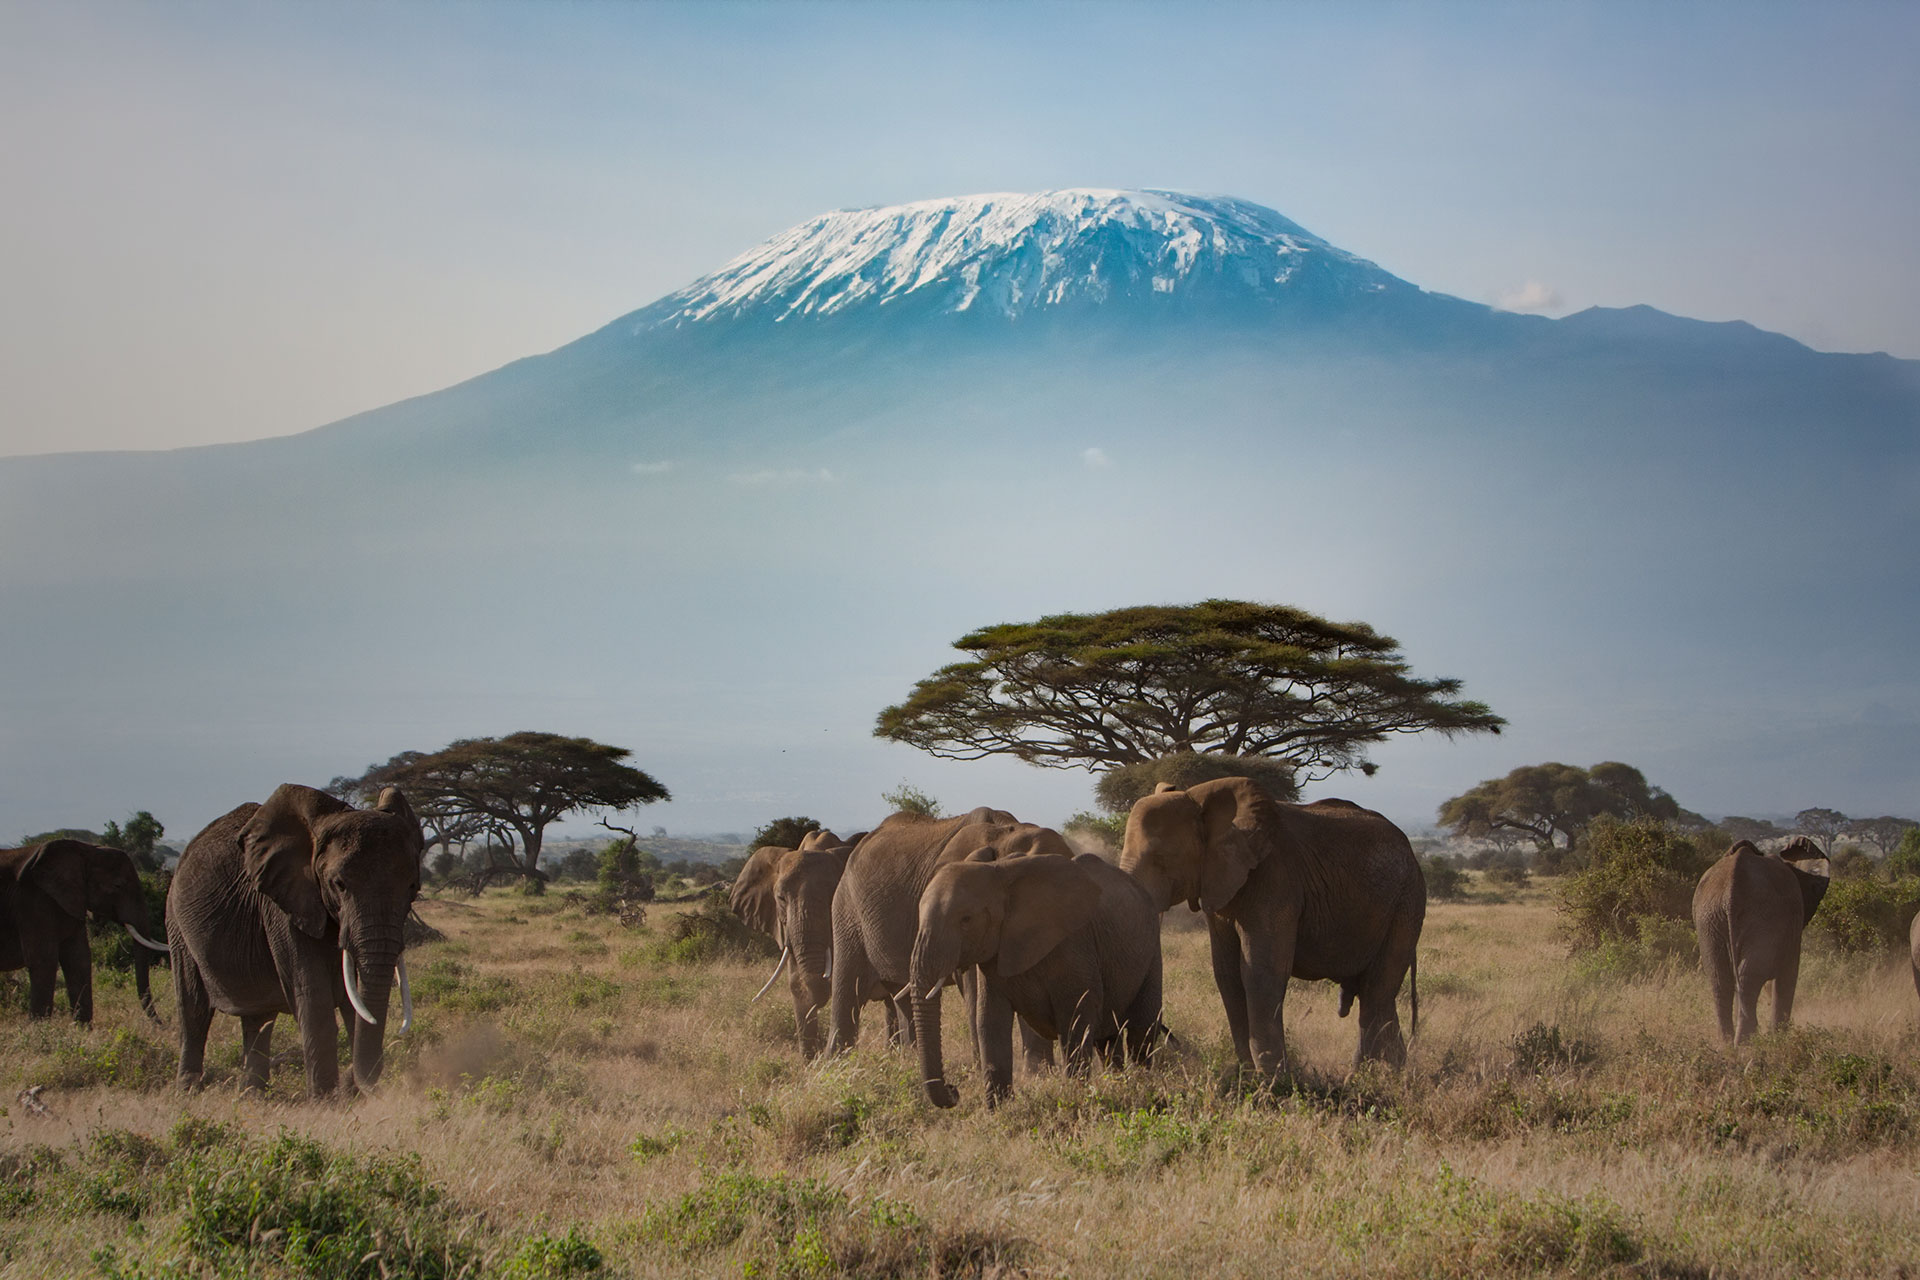 Top 3 must see natural wonders - Mount Kilimanjaro